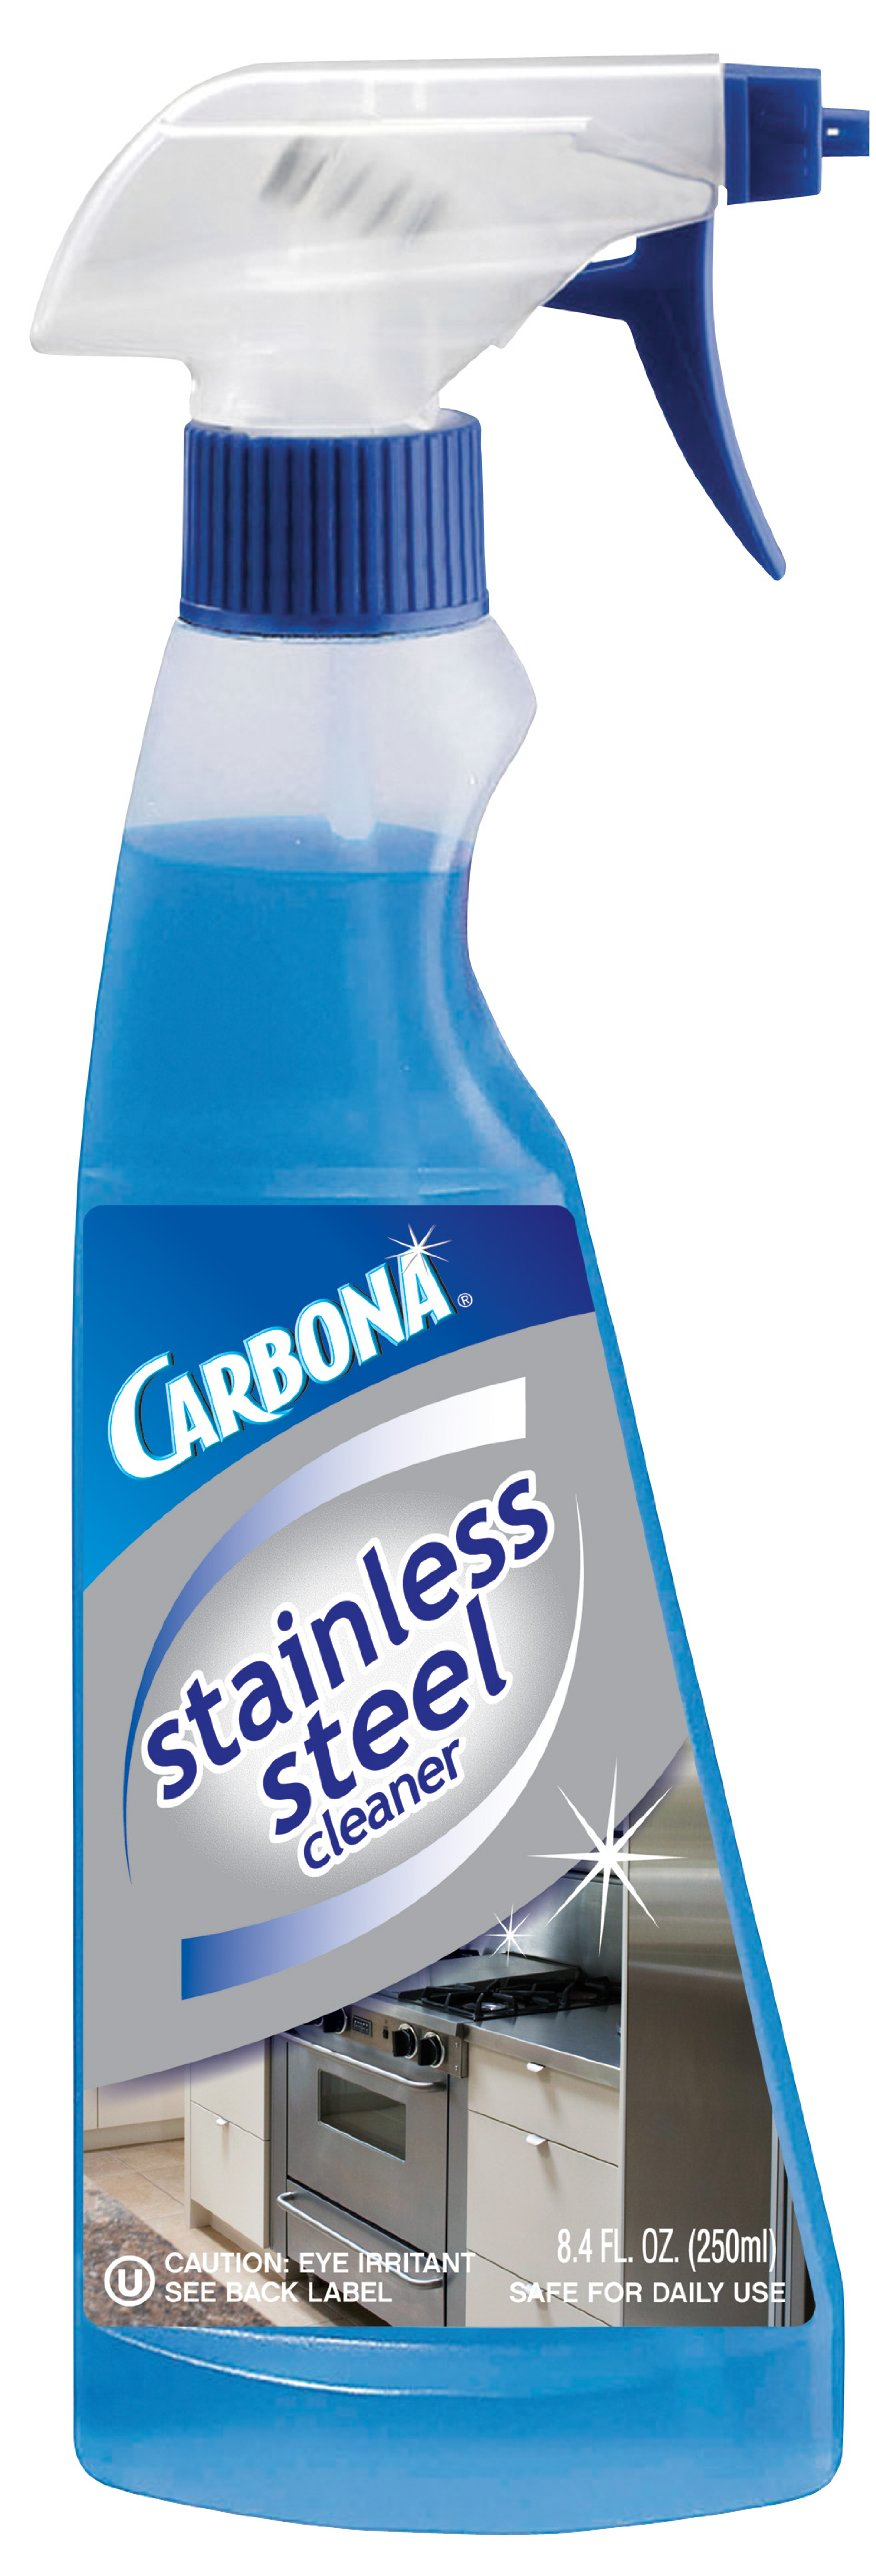 Carbona Clean It! Stainless Steel Cleaner, 8.4-Ounce Bottle (Pack of 6)